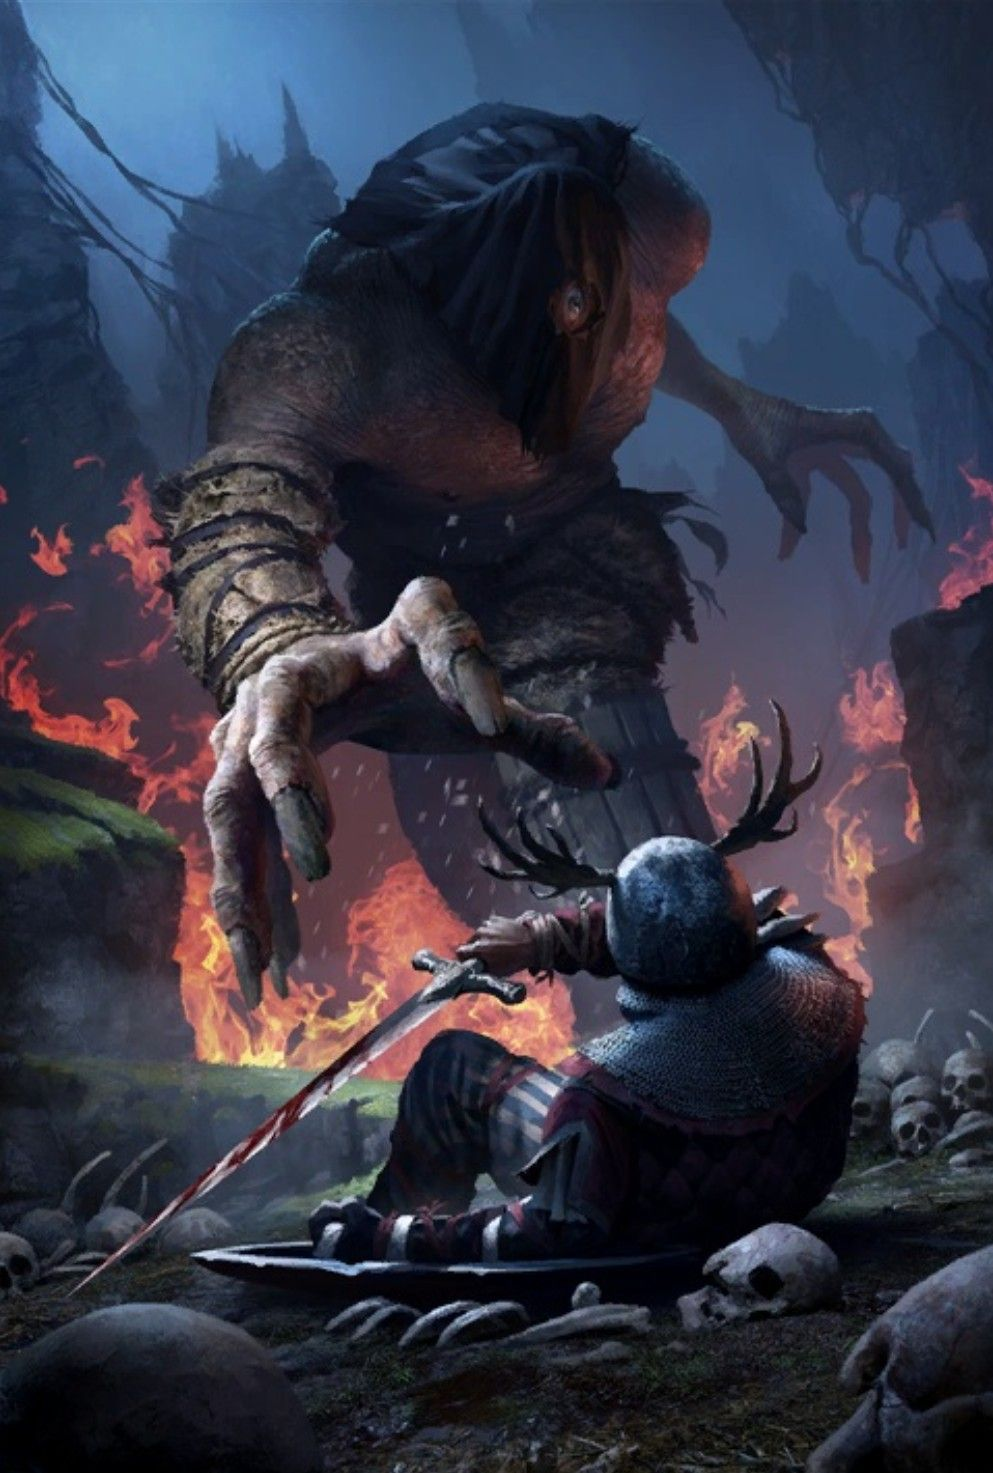 The Witcher Old Speartip Gwent Card Monster The Witcher Witcher Art Card Games